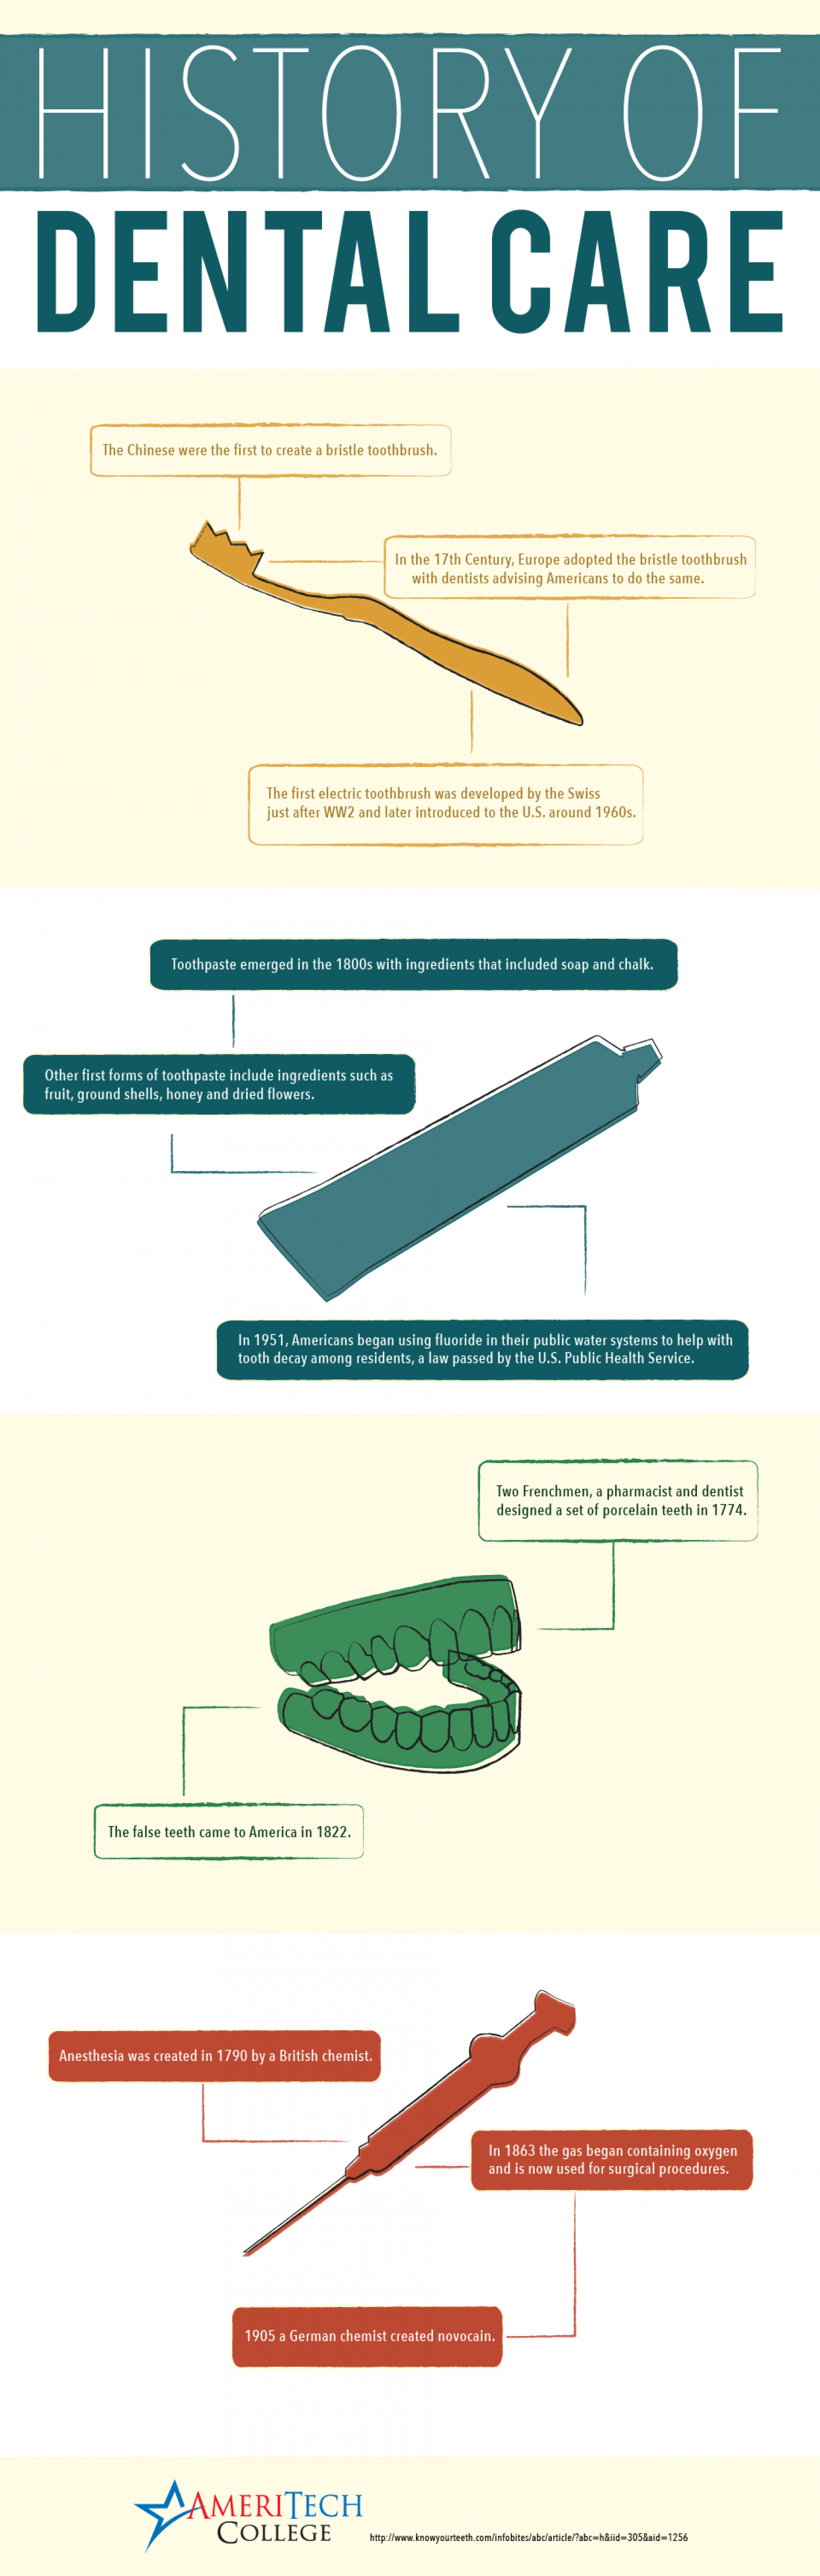 History of Dental Care Infographic